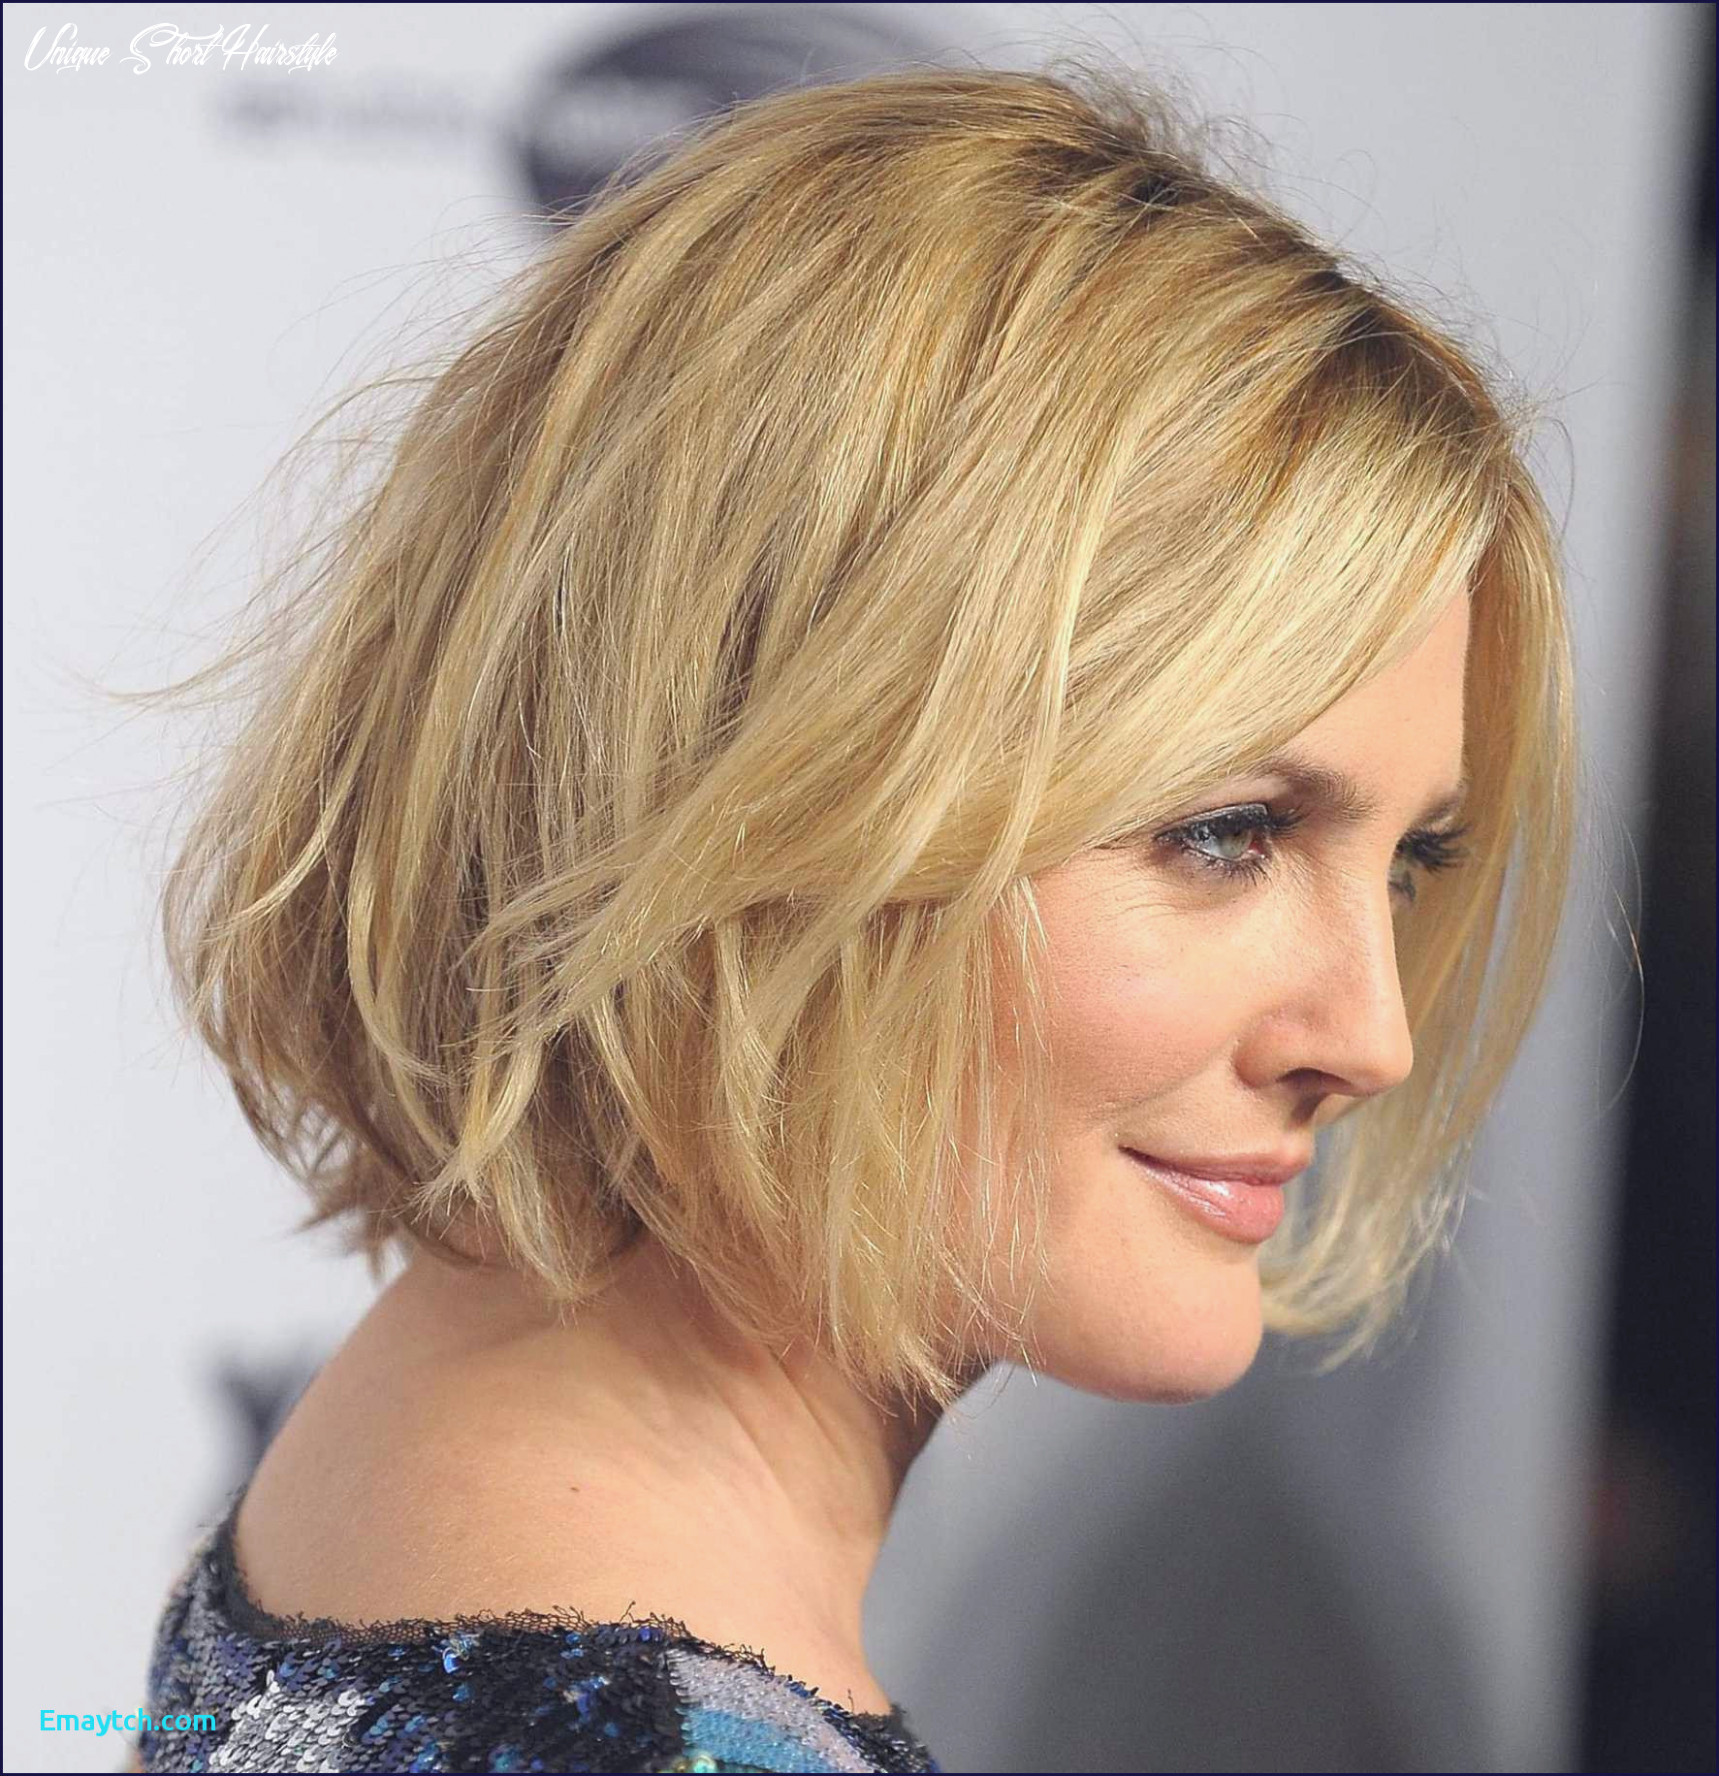 New Hairstyle 12 Female Unique Short Cut Frisuren Images